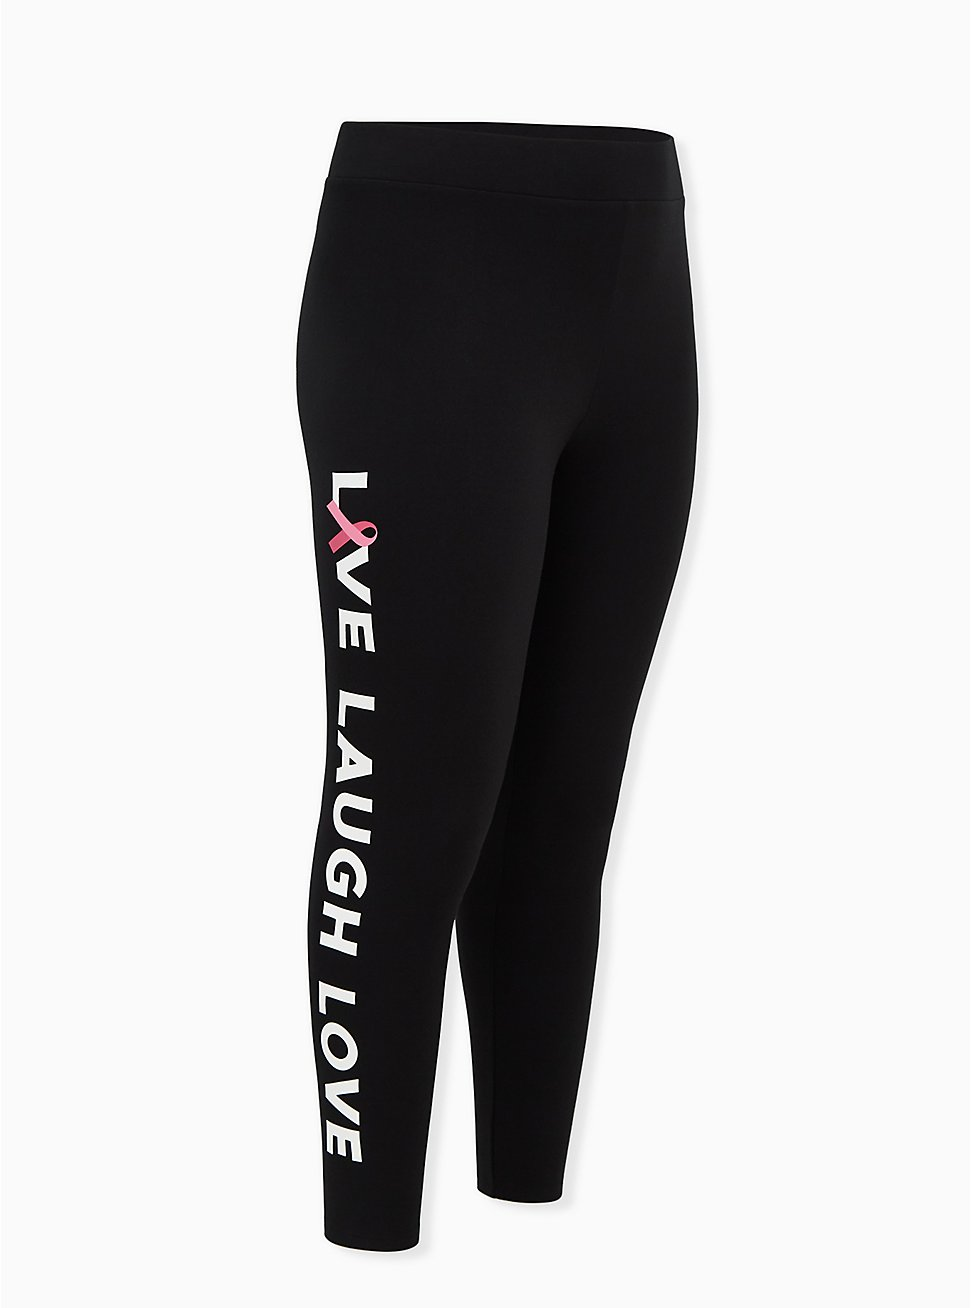 Breast Cancer Awareness - Live Laugh Love Fleece-Lined Legging Black, BLACK, hi-res